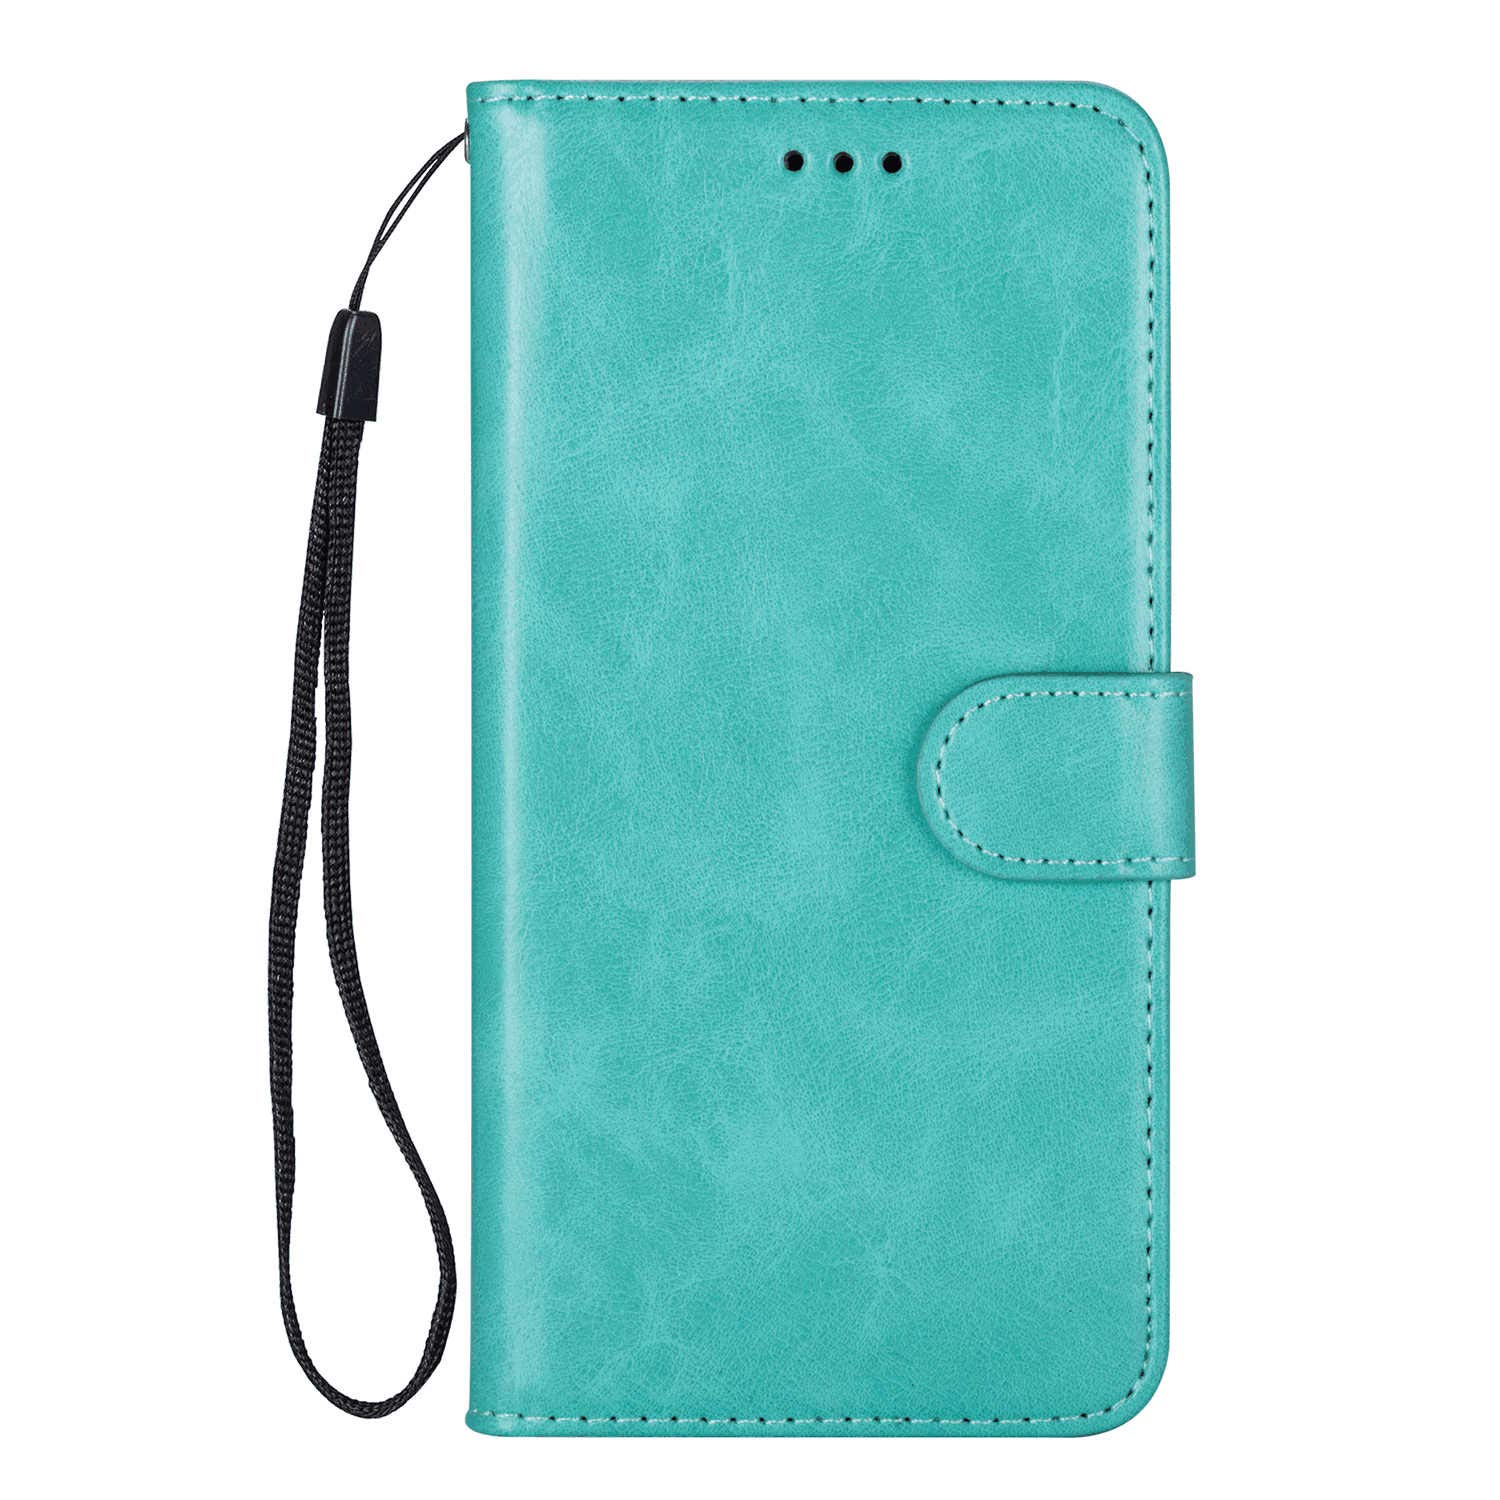 Simple Flip Case Fit for Samsung Galaxy S10 5G, Green Leather Cover Wallet for Samsung Galaxy S10 5G